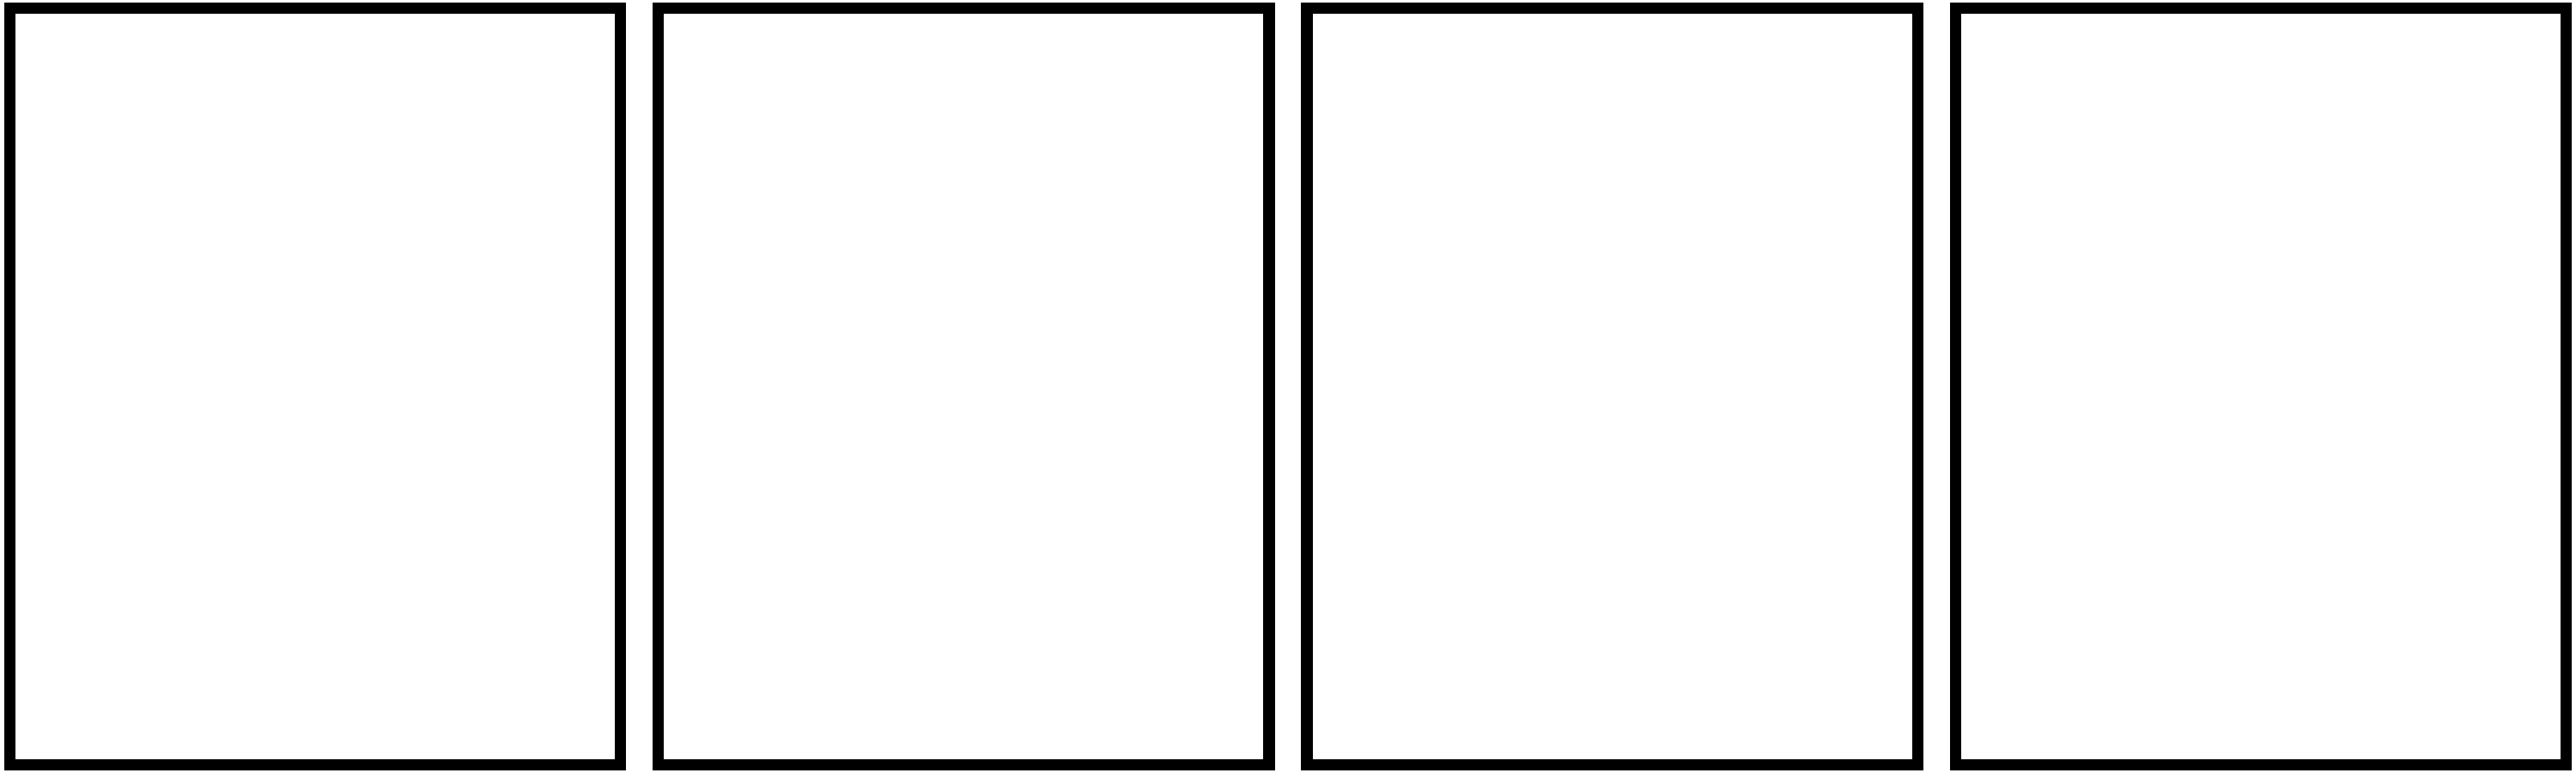 Comic strip template 4 boxes the image for Four panel comic strip template